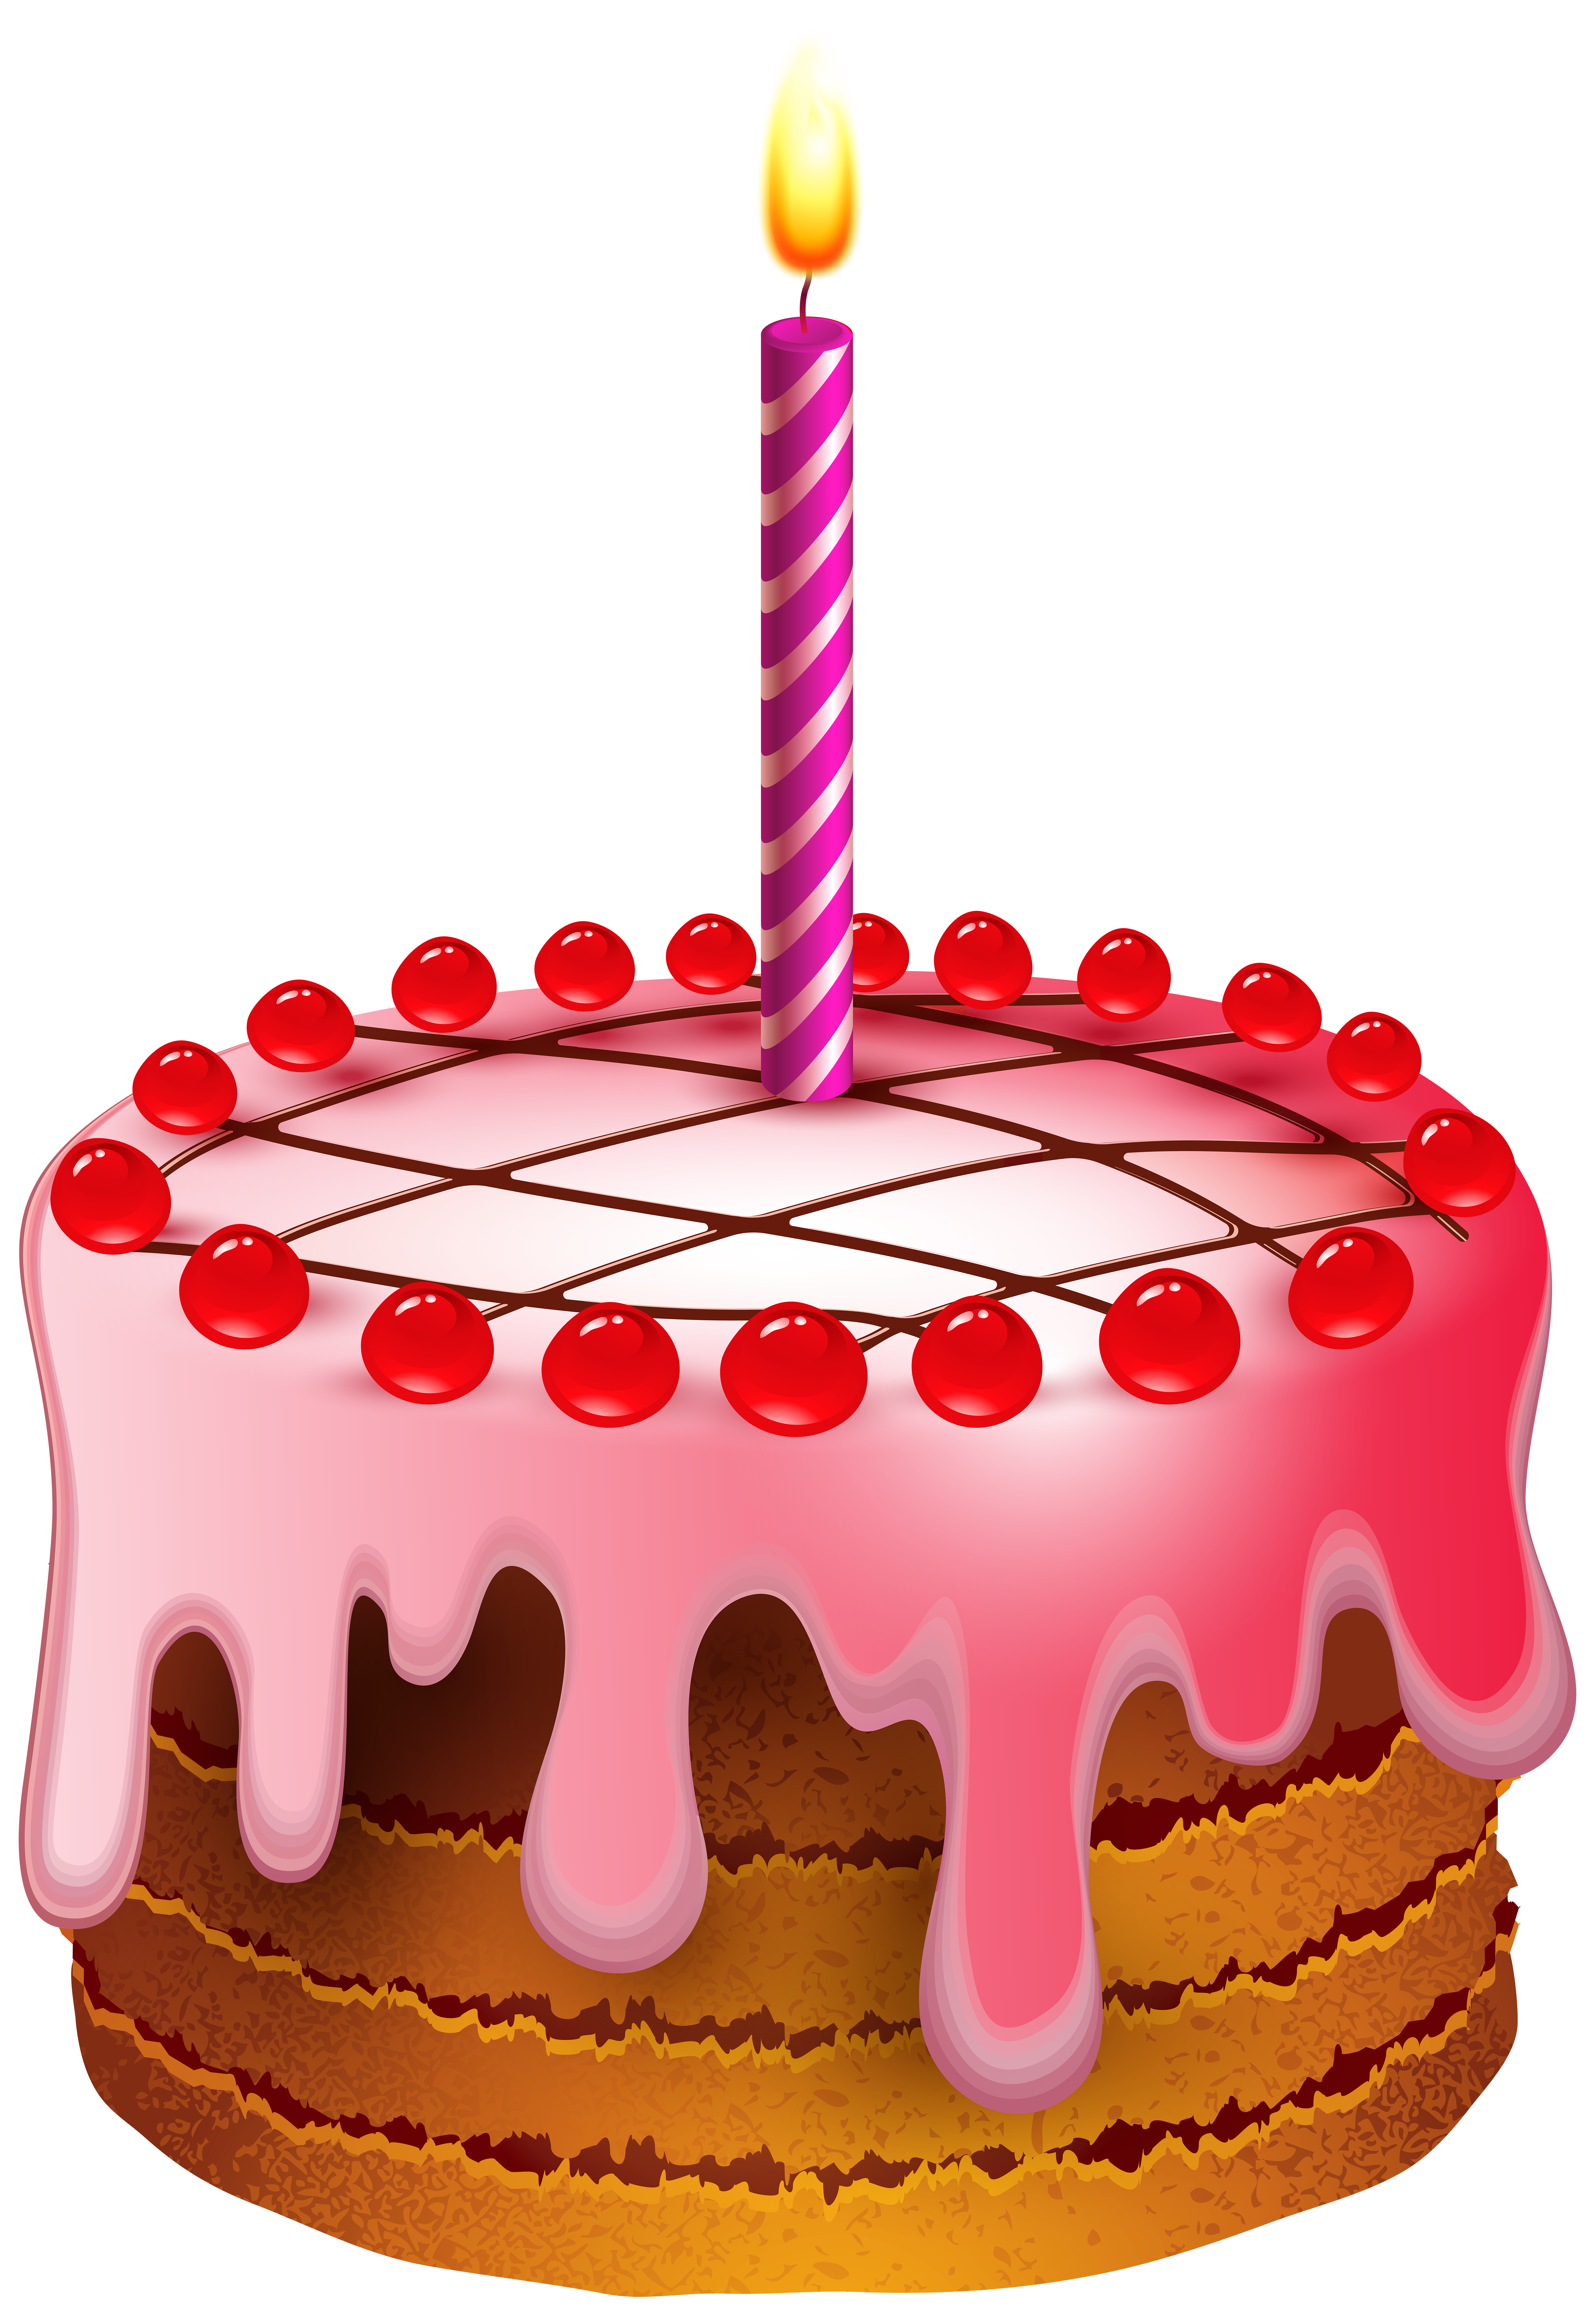 Transparent candles birthday cake. With candle clip art